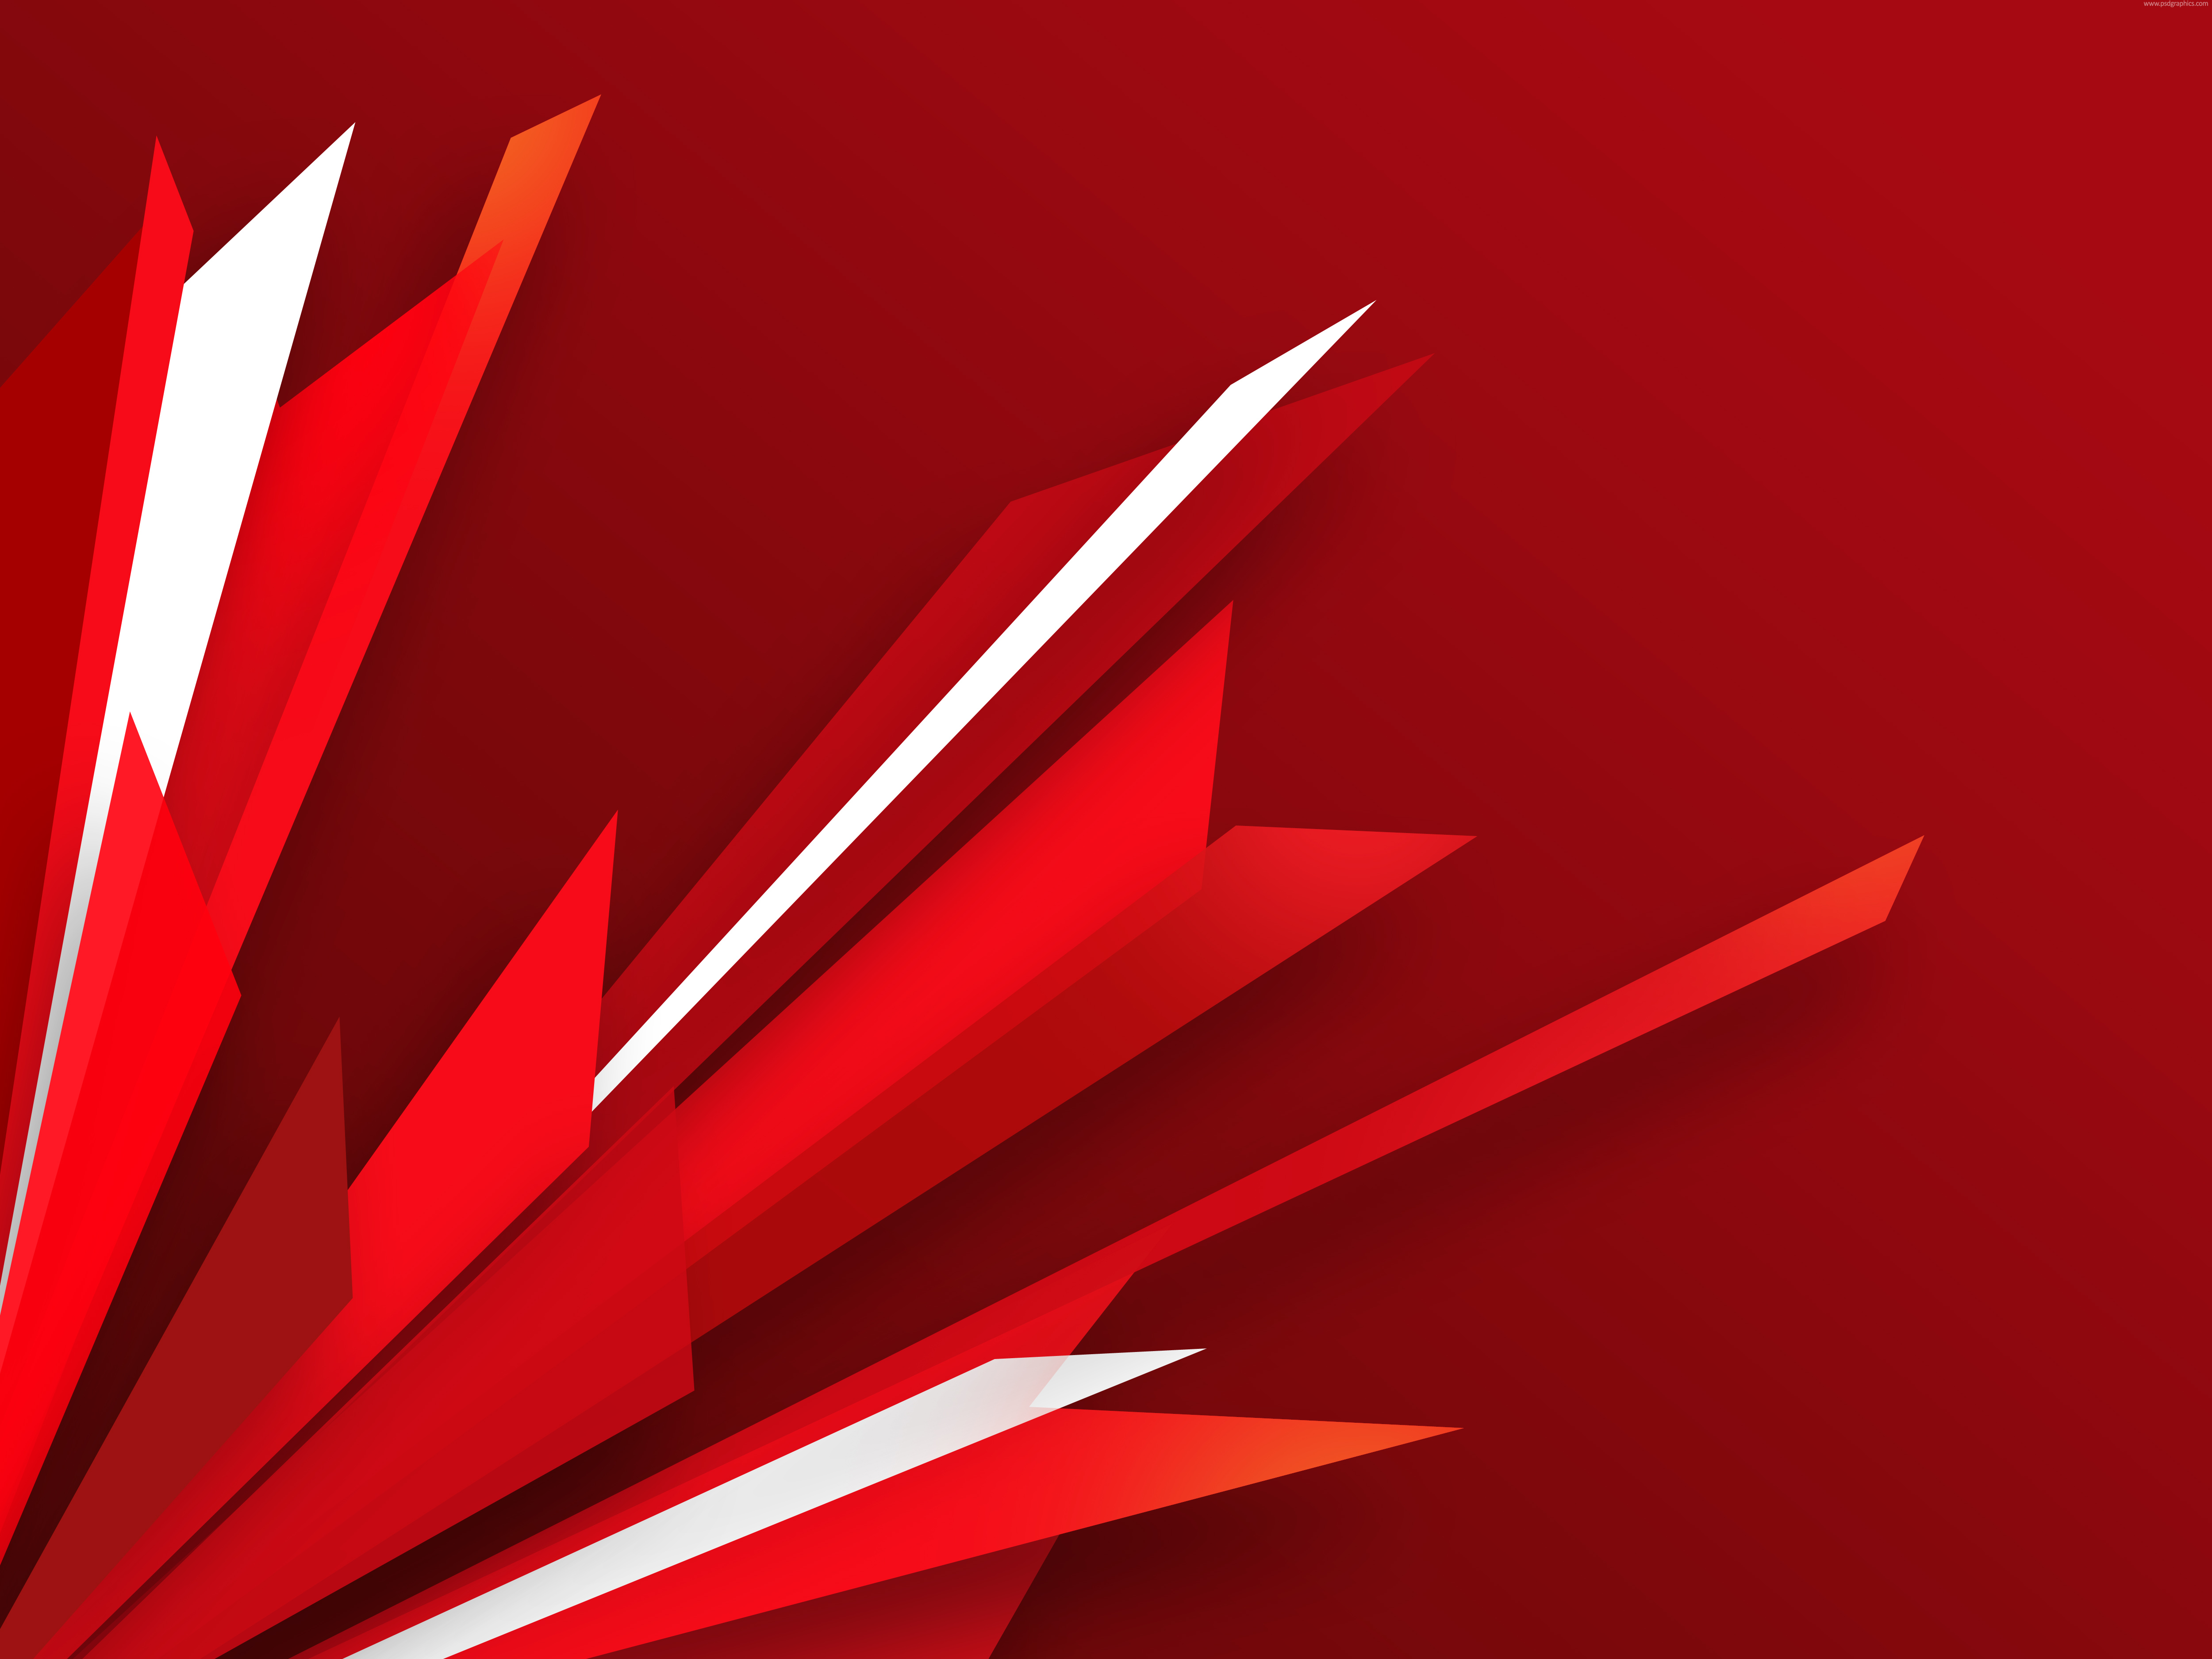 Abstract red burst background PSDGraphics 5000x3750